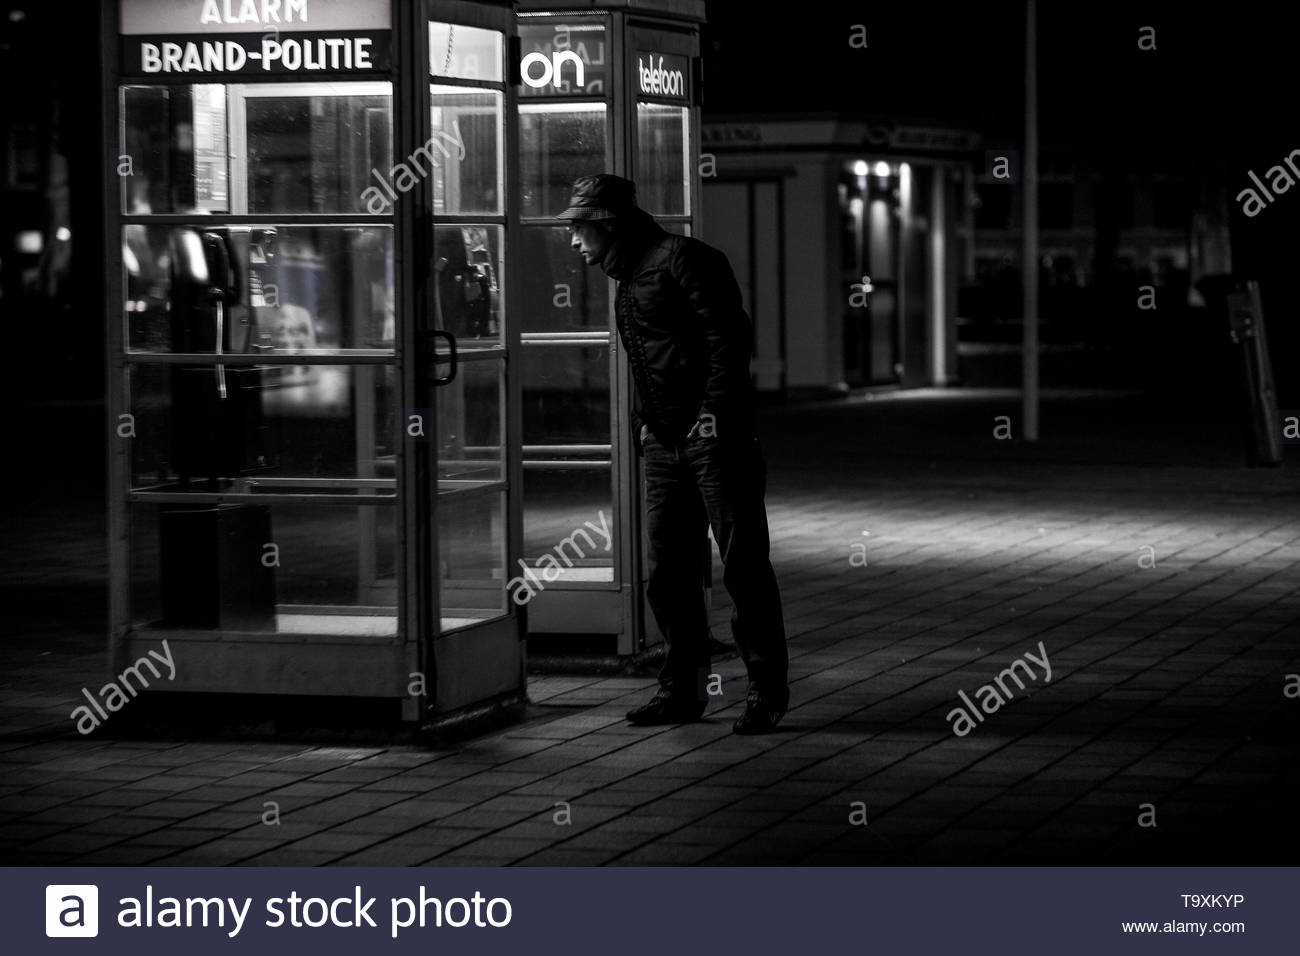 In black and white this image is veyr mysterious certainly at night - Stock Image